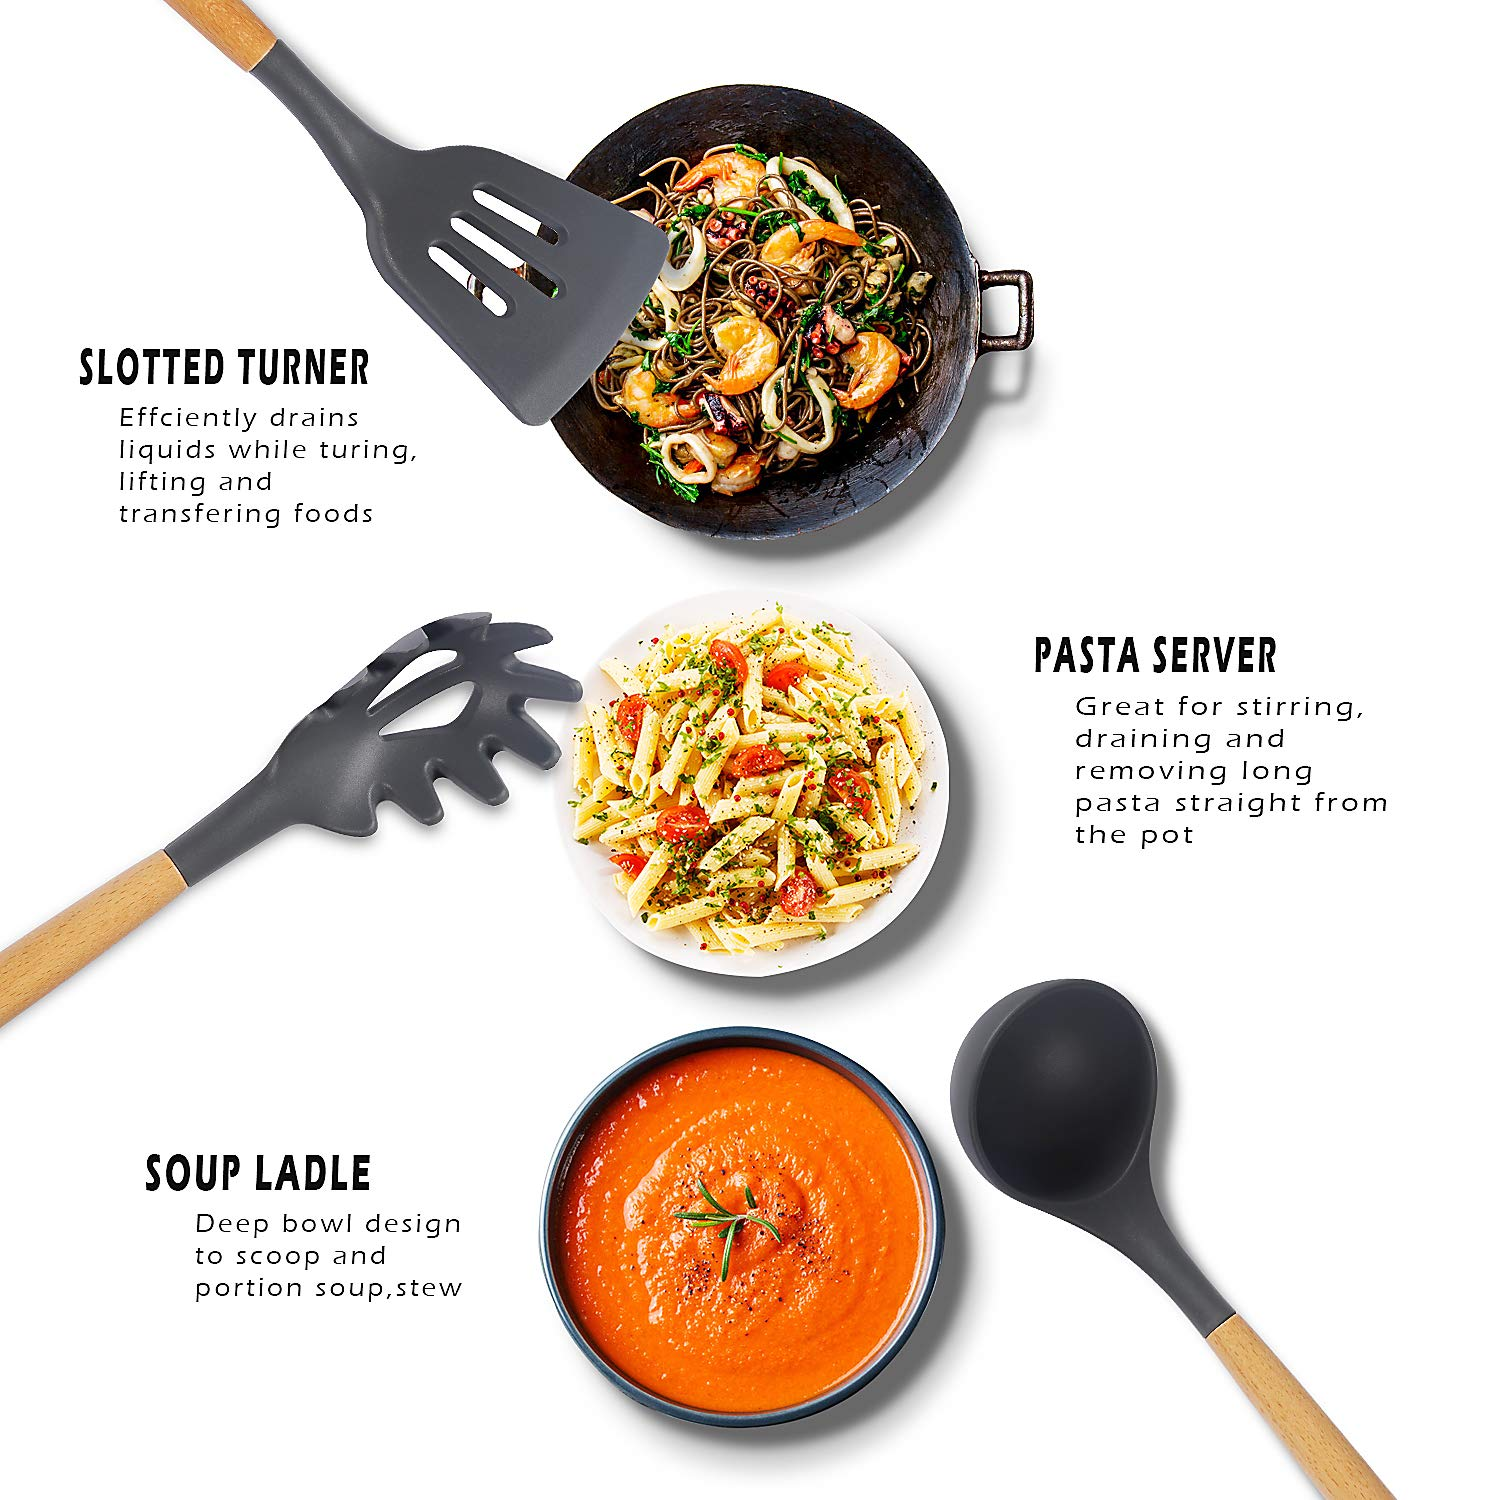 Kitchen Utensil Set - 11 Piece Cooking Utensils - Non-stick Silicone and Wooden Utensils. BPA Free, Non Toxic Turner Tongs Spatula Spoon Set. Best Chef Kitchen Tool Set Gray - Chef's Hand by Chef's Hand (Image #3)